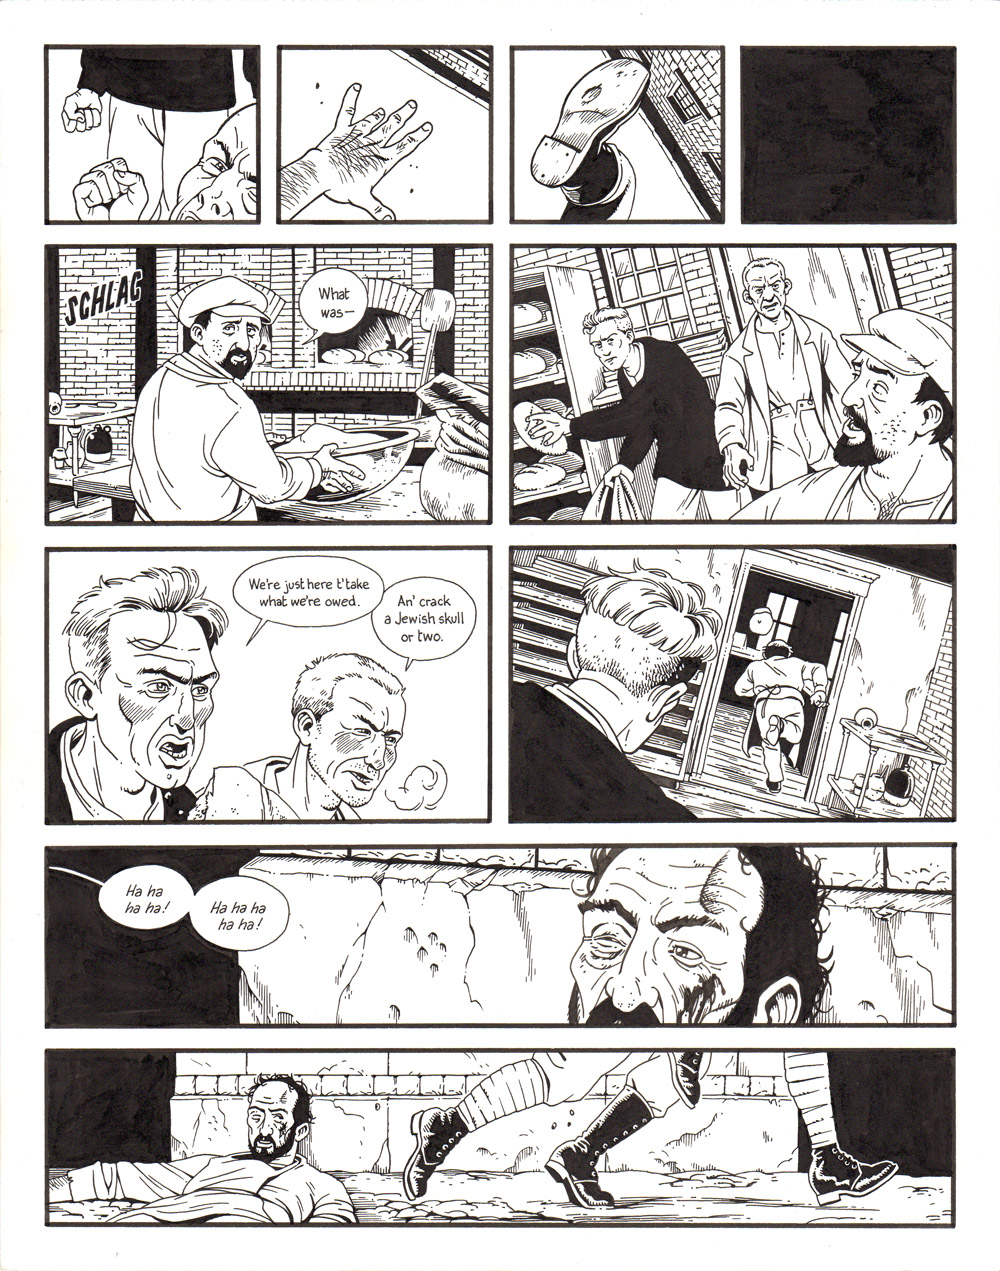 Berlin: Book 1 - Page 141